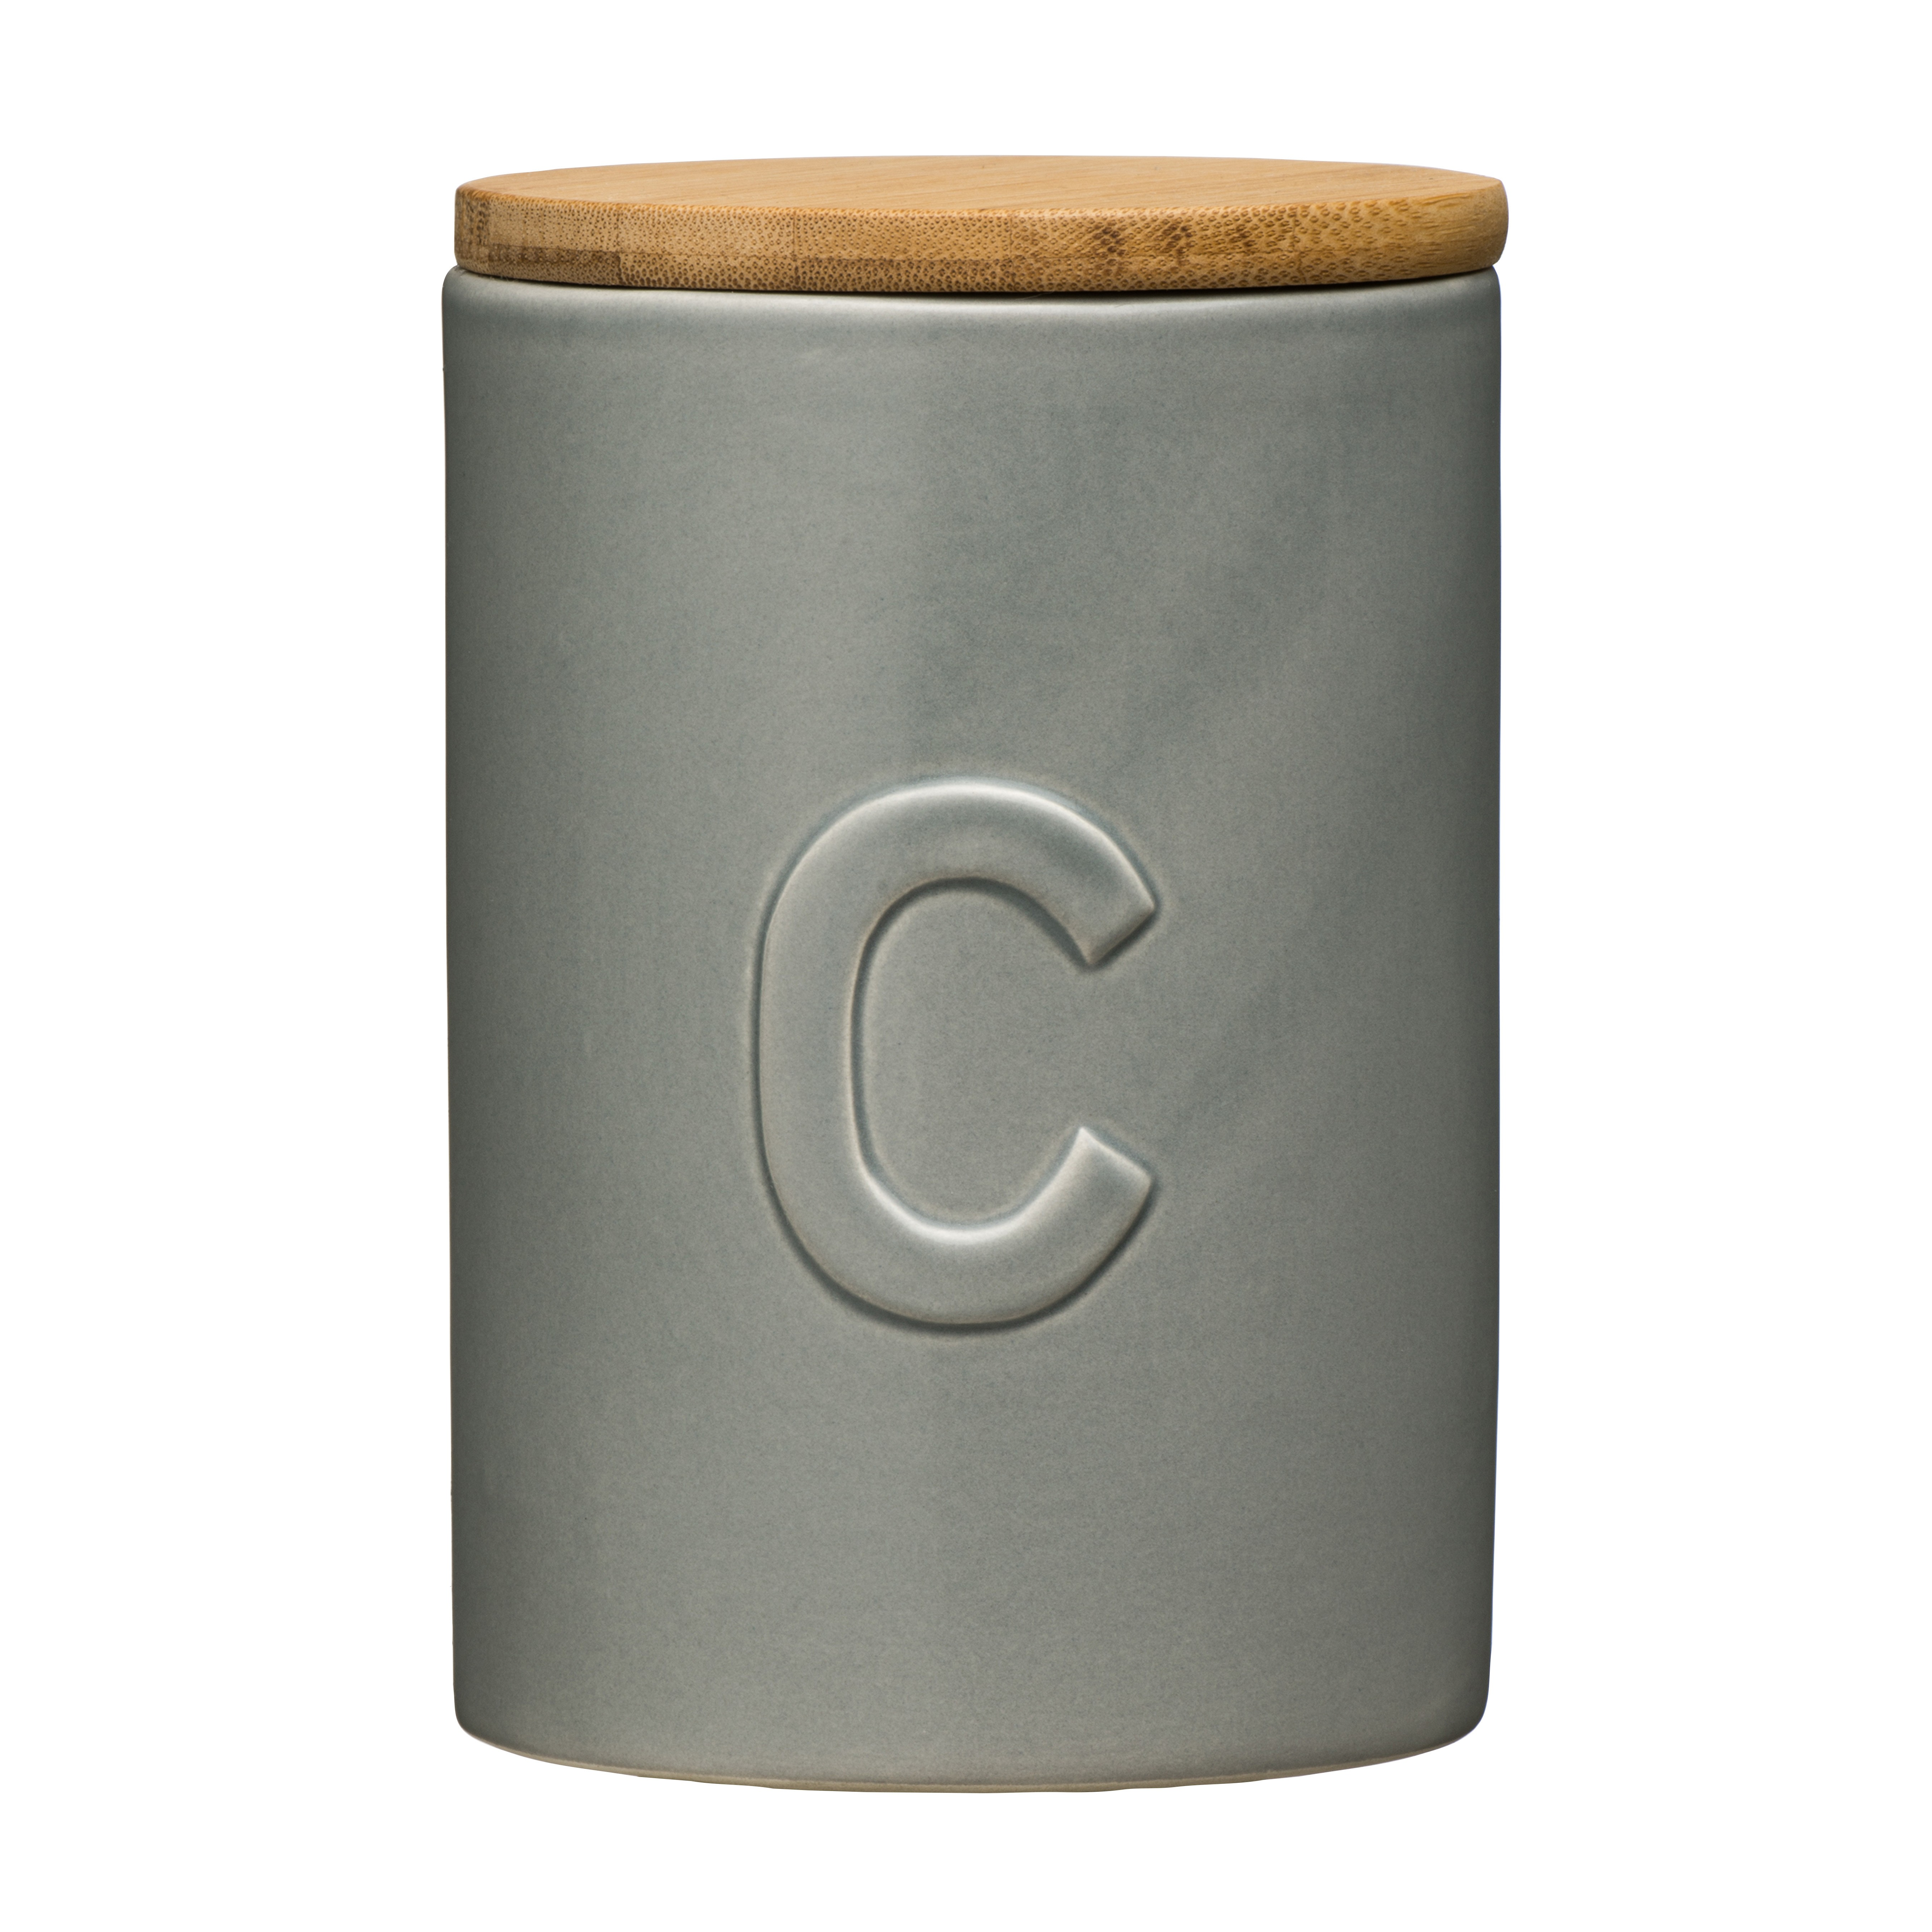 Fenwick Coffee Canister - Light Grey